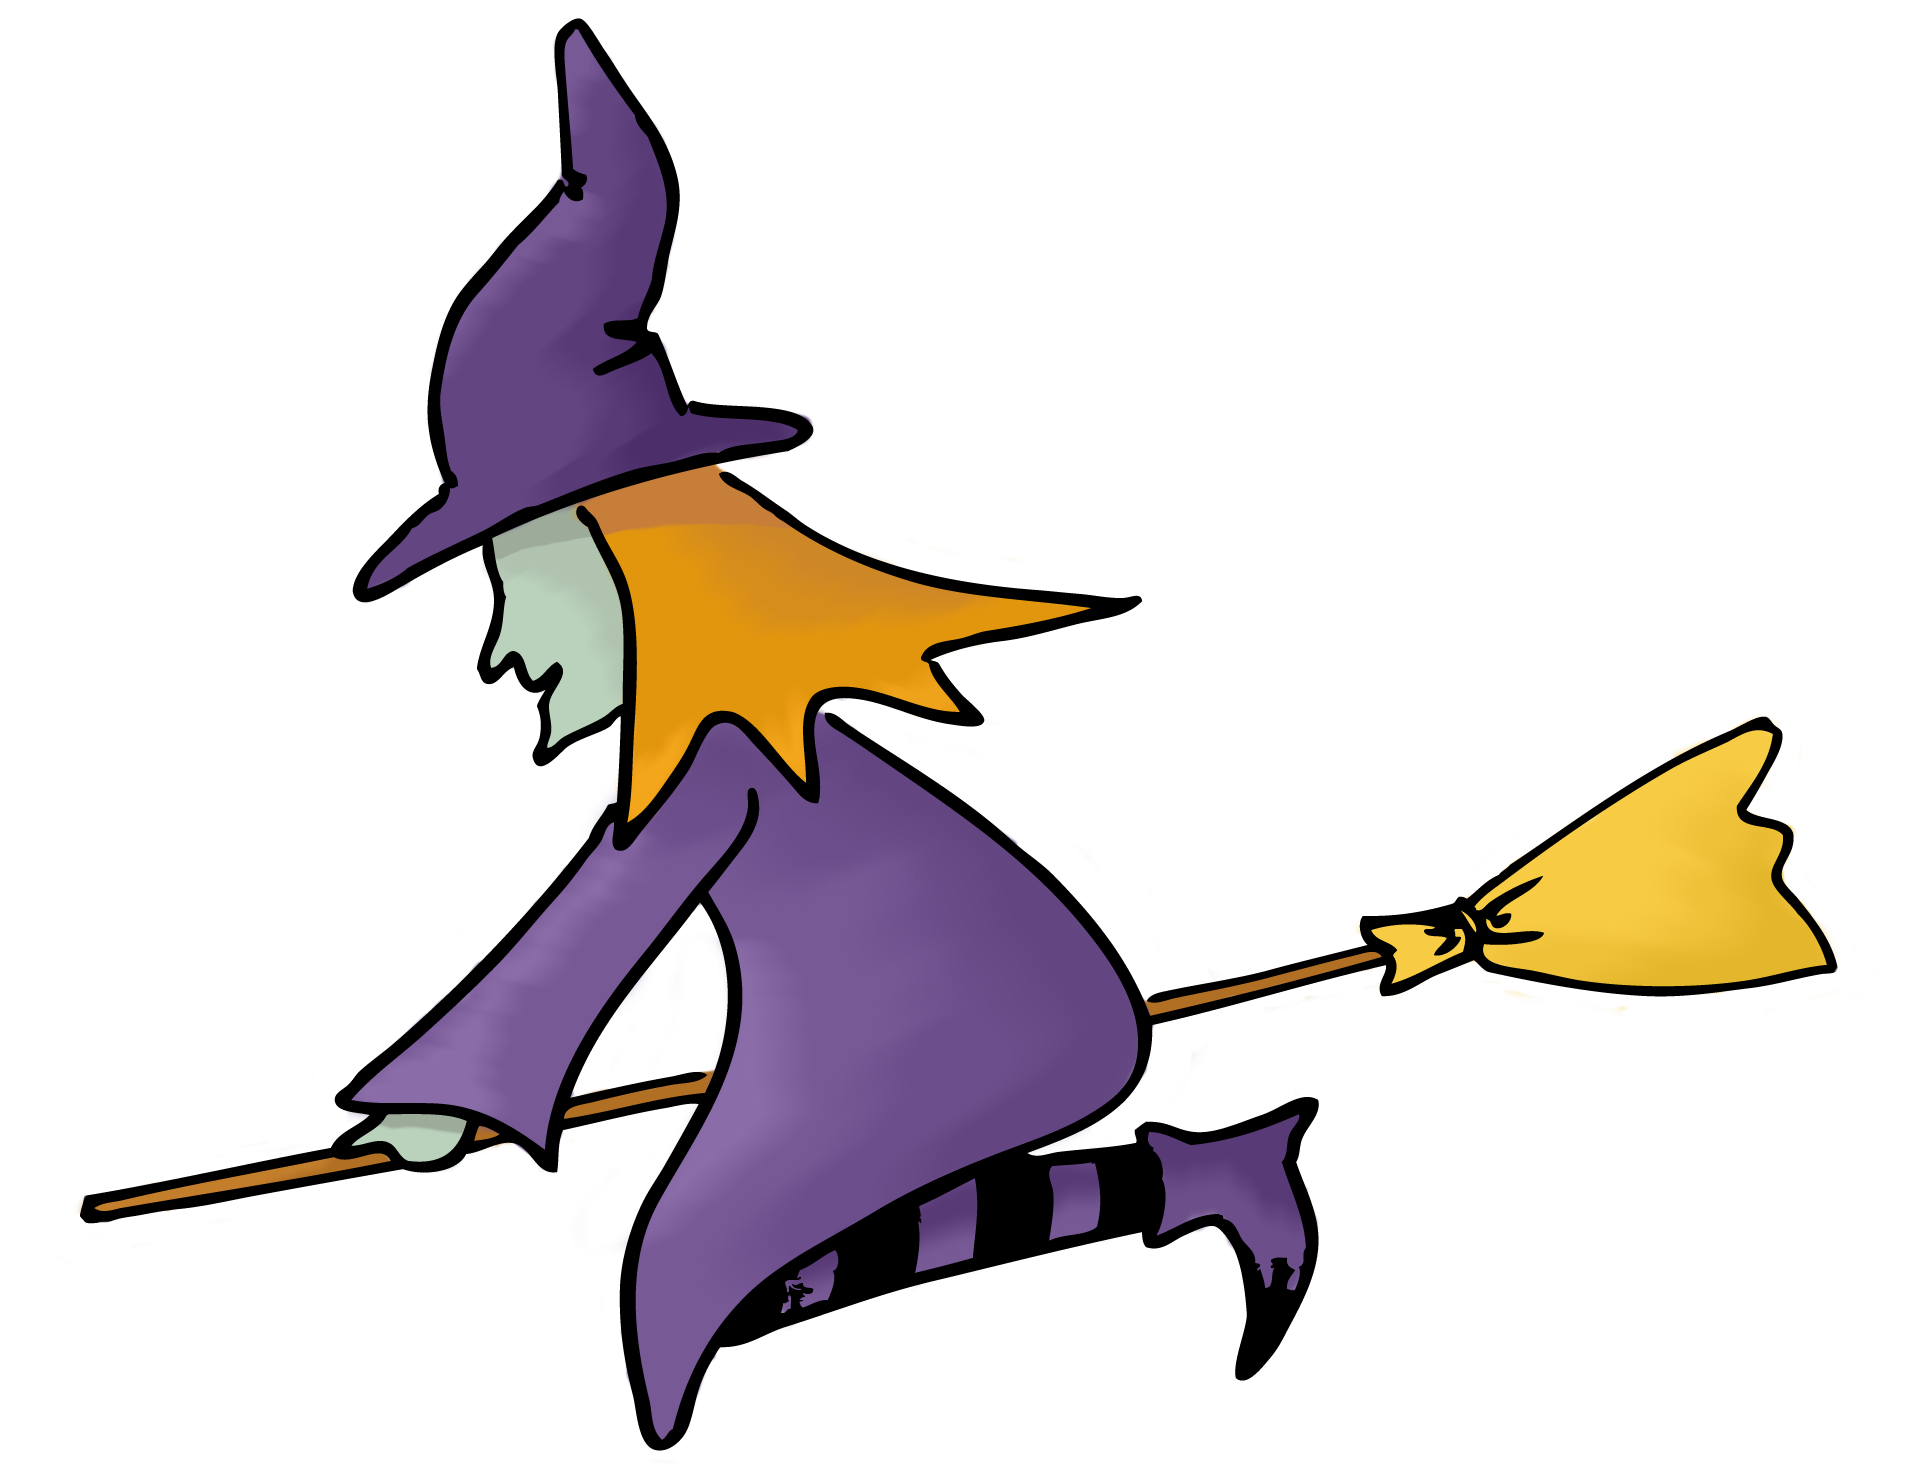 Free witch cliparts download. Witches clipart clip transparent download